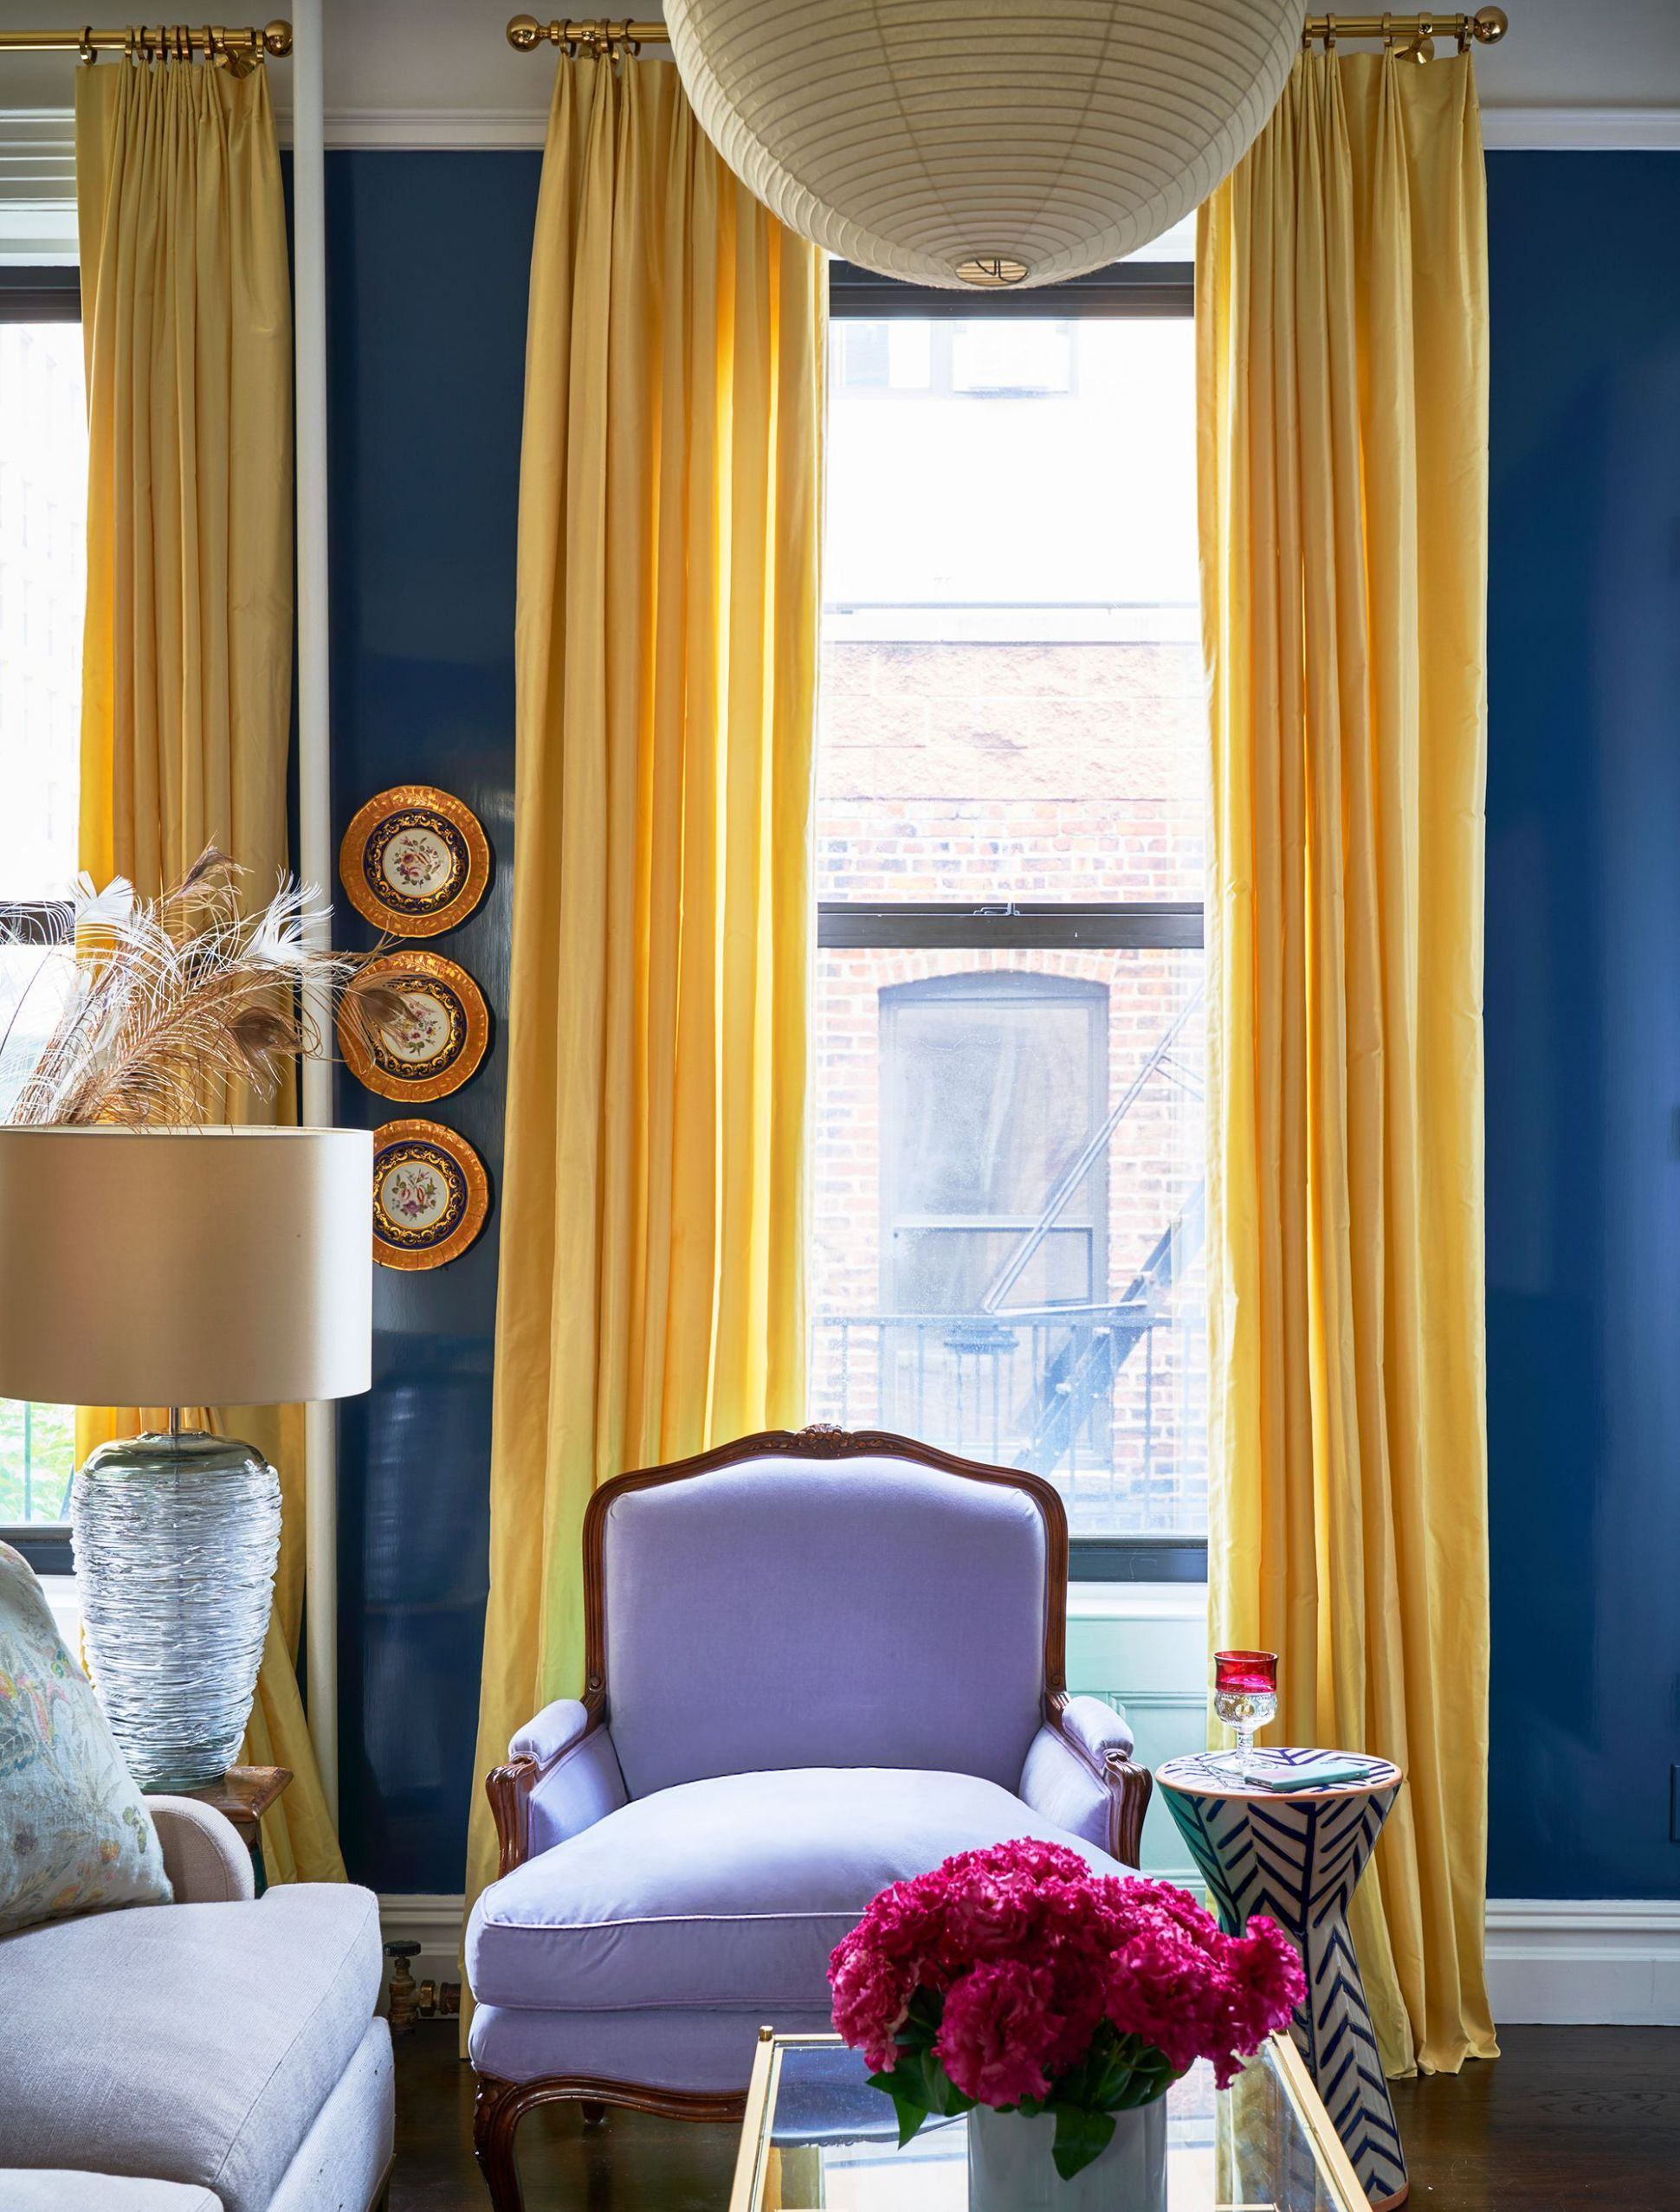 10 Best Window Treatment Ideas - Window Coverings, Curtains, & Blinds